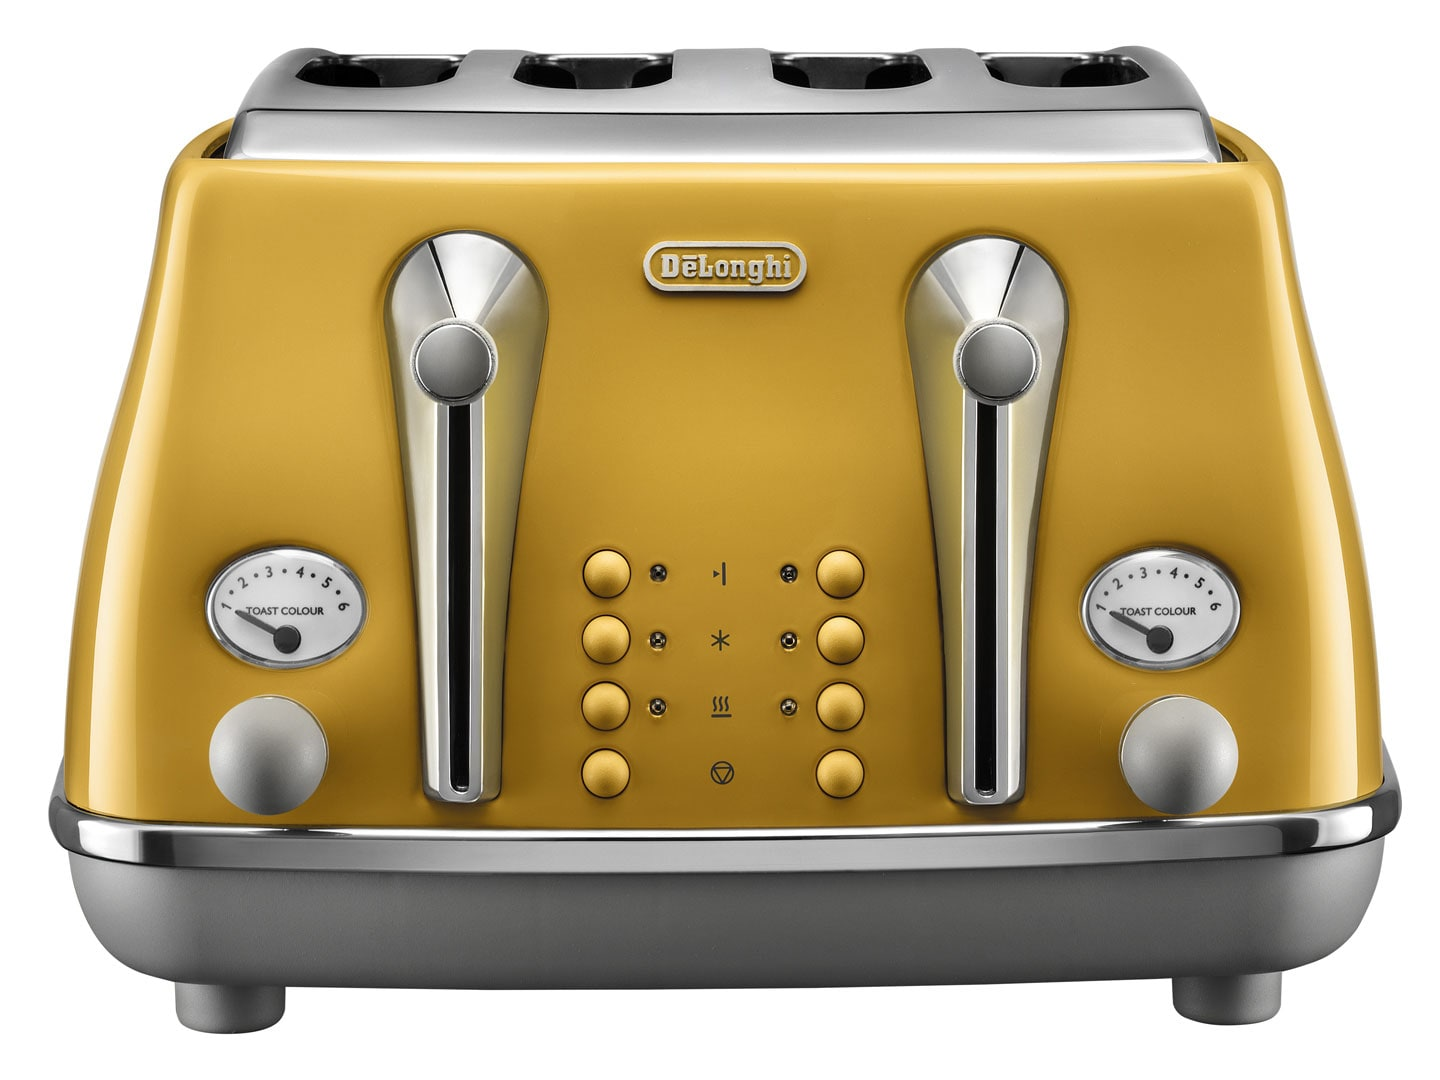 DeLonghi Icona Capitals 4 Slice Toaster - New York Yellow CTOC 4003.Y